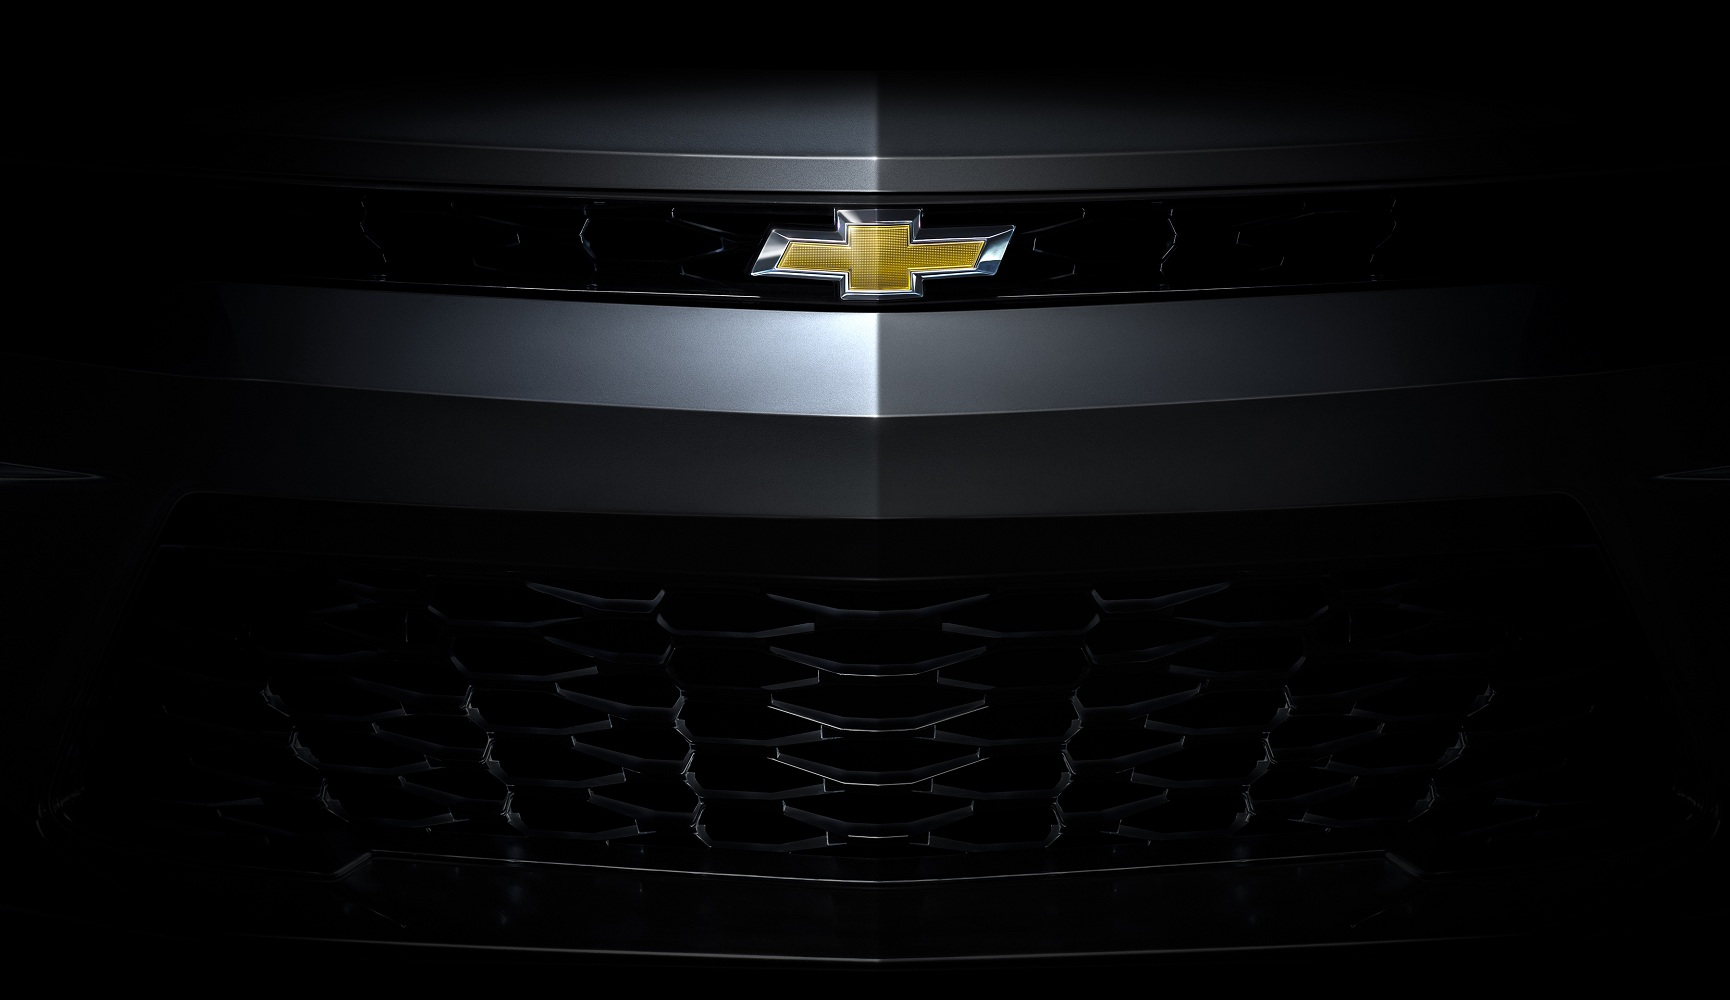 2016 Chevrolet Camaro front grille bars